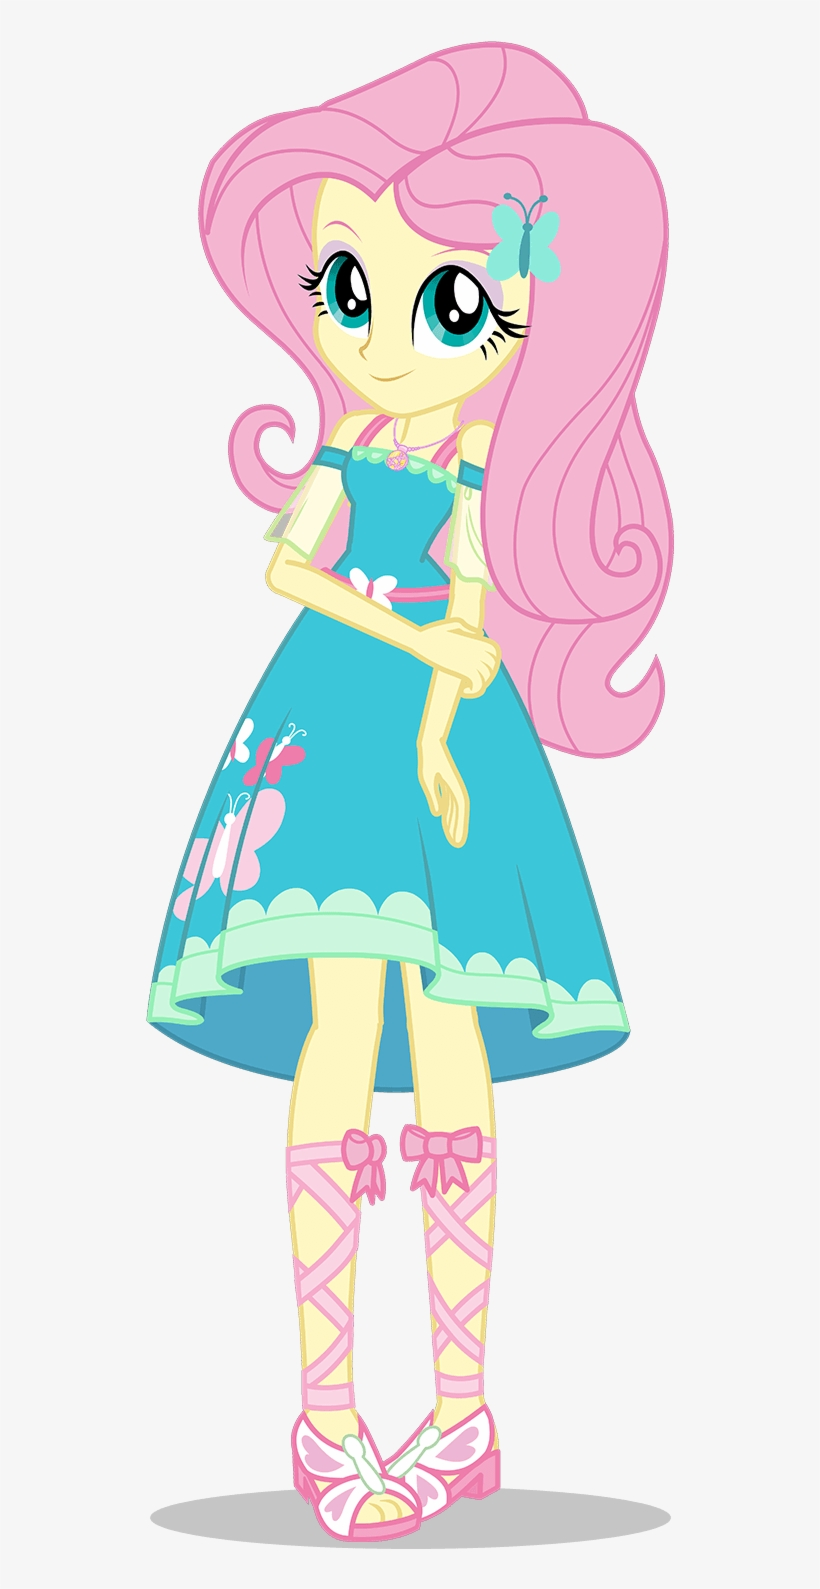 My Little Pony - My Little Pony Equestria Girls Fluttershy, transparent png #2869193